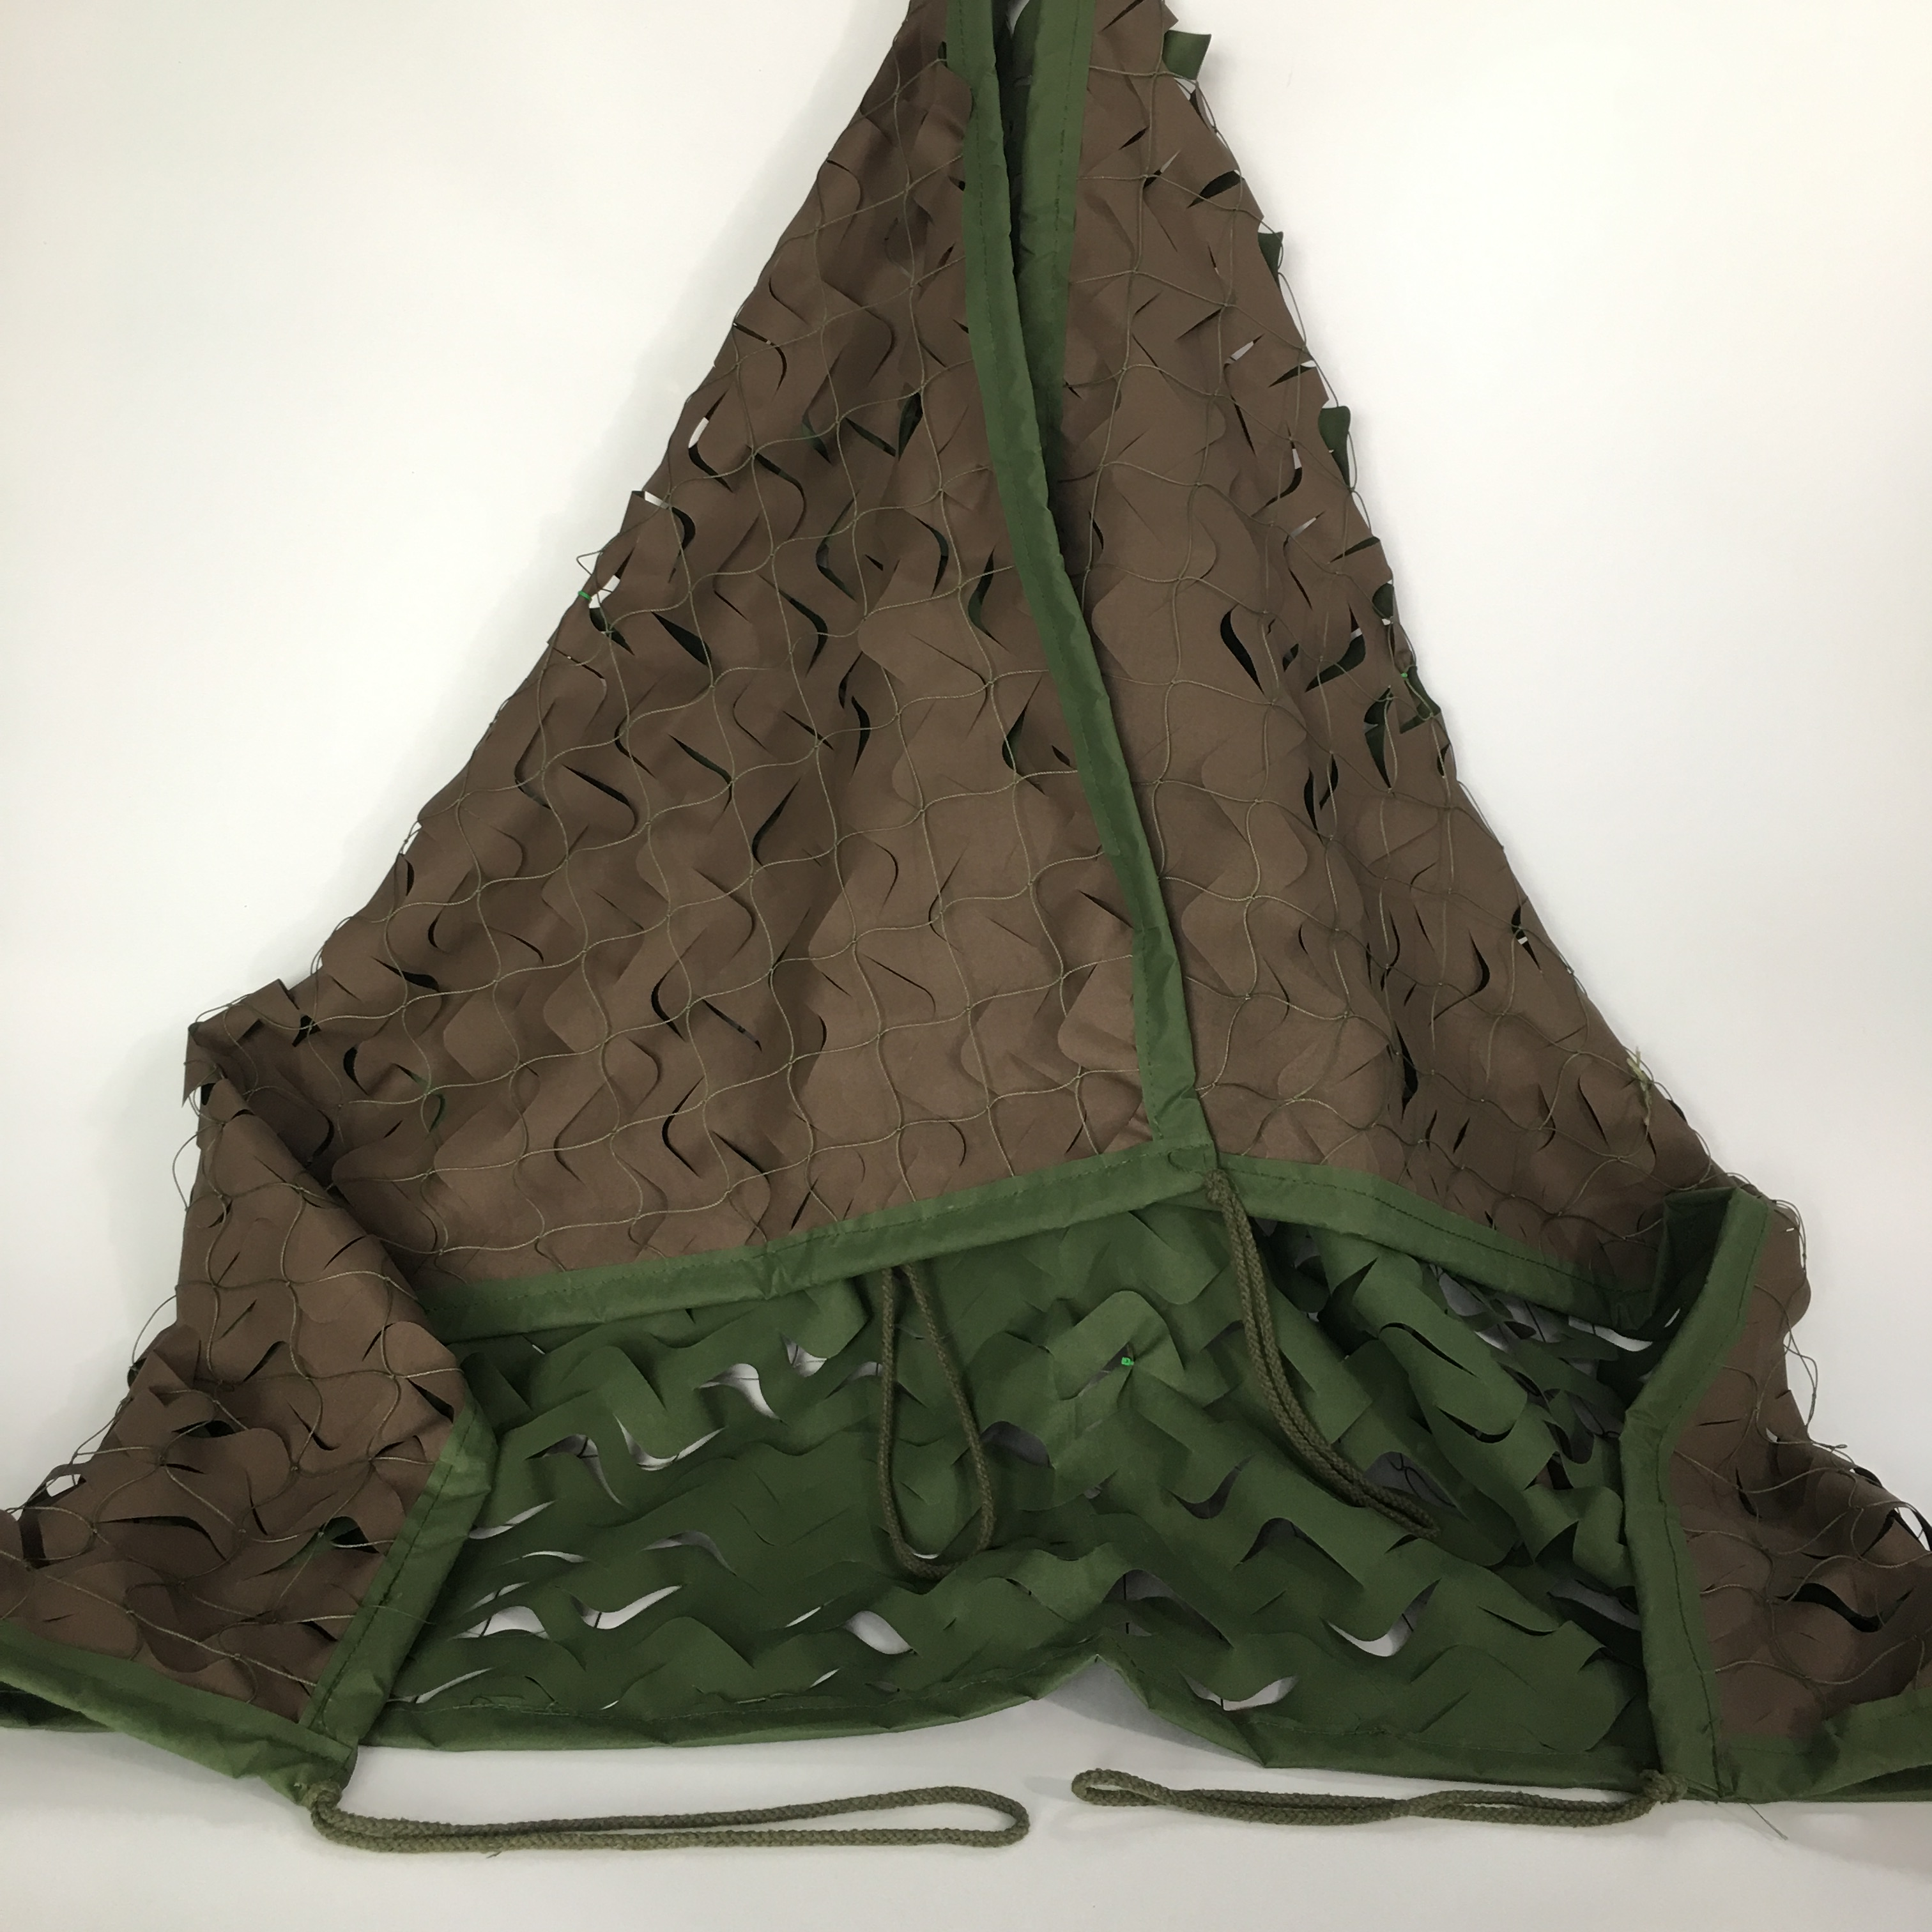 Wholesale Military Polyester Woodland Camouflage Net Green Camo Netting for Camping Hunting Hide